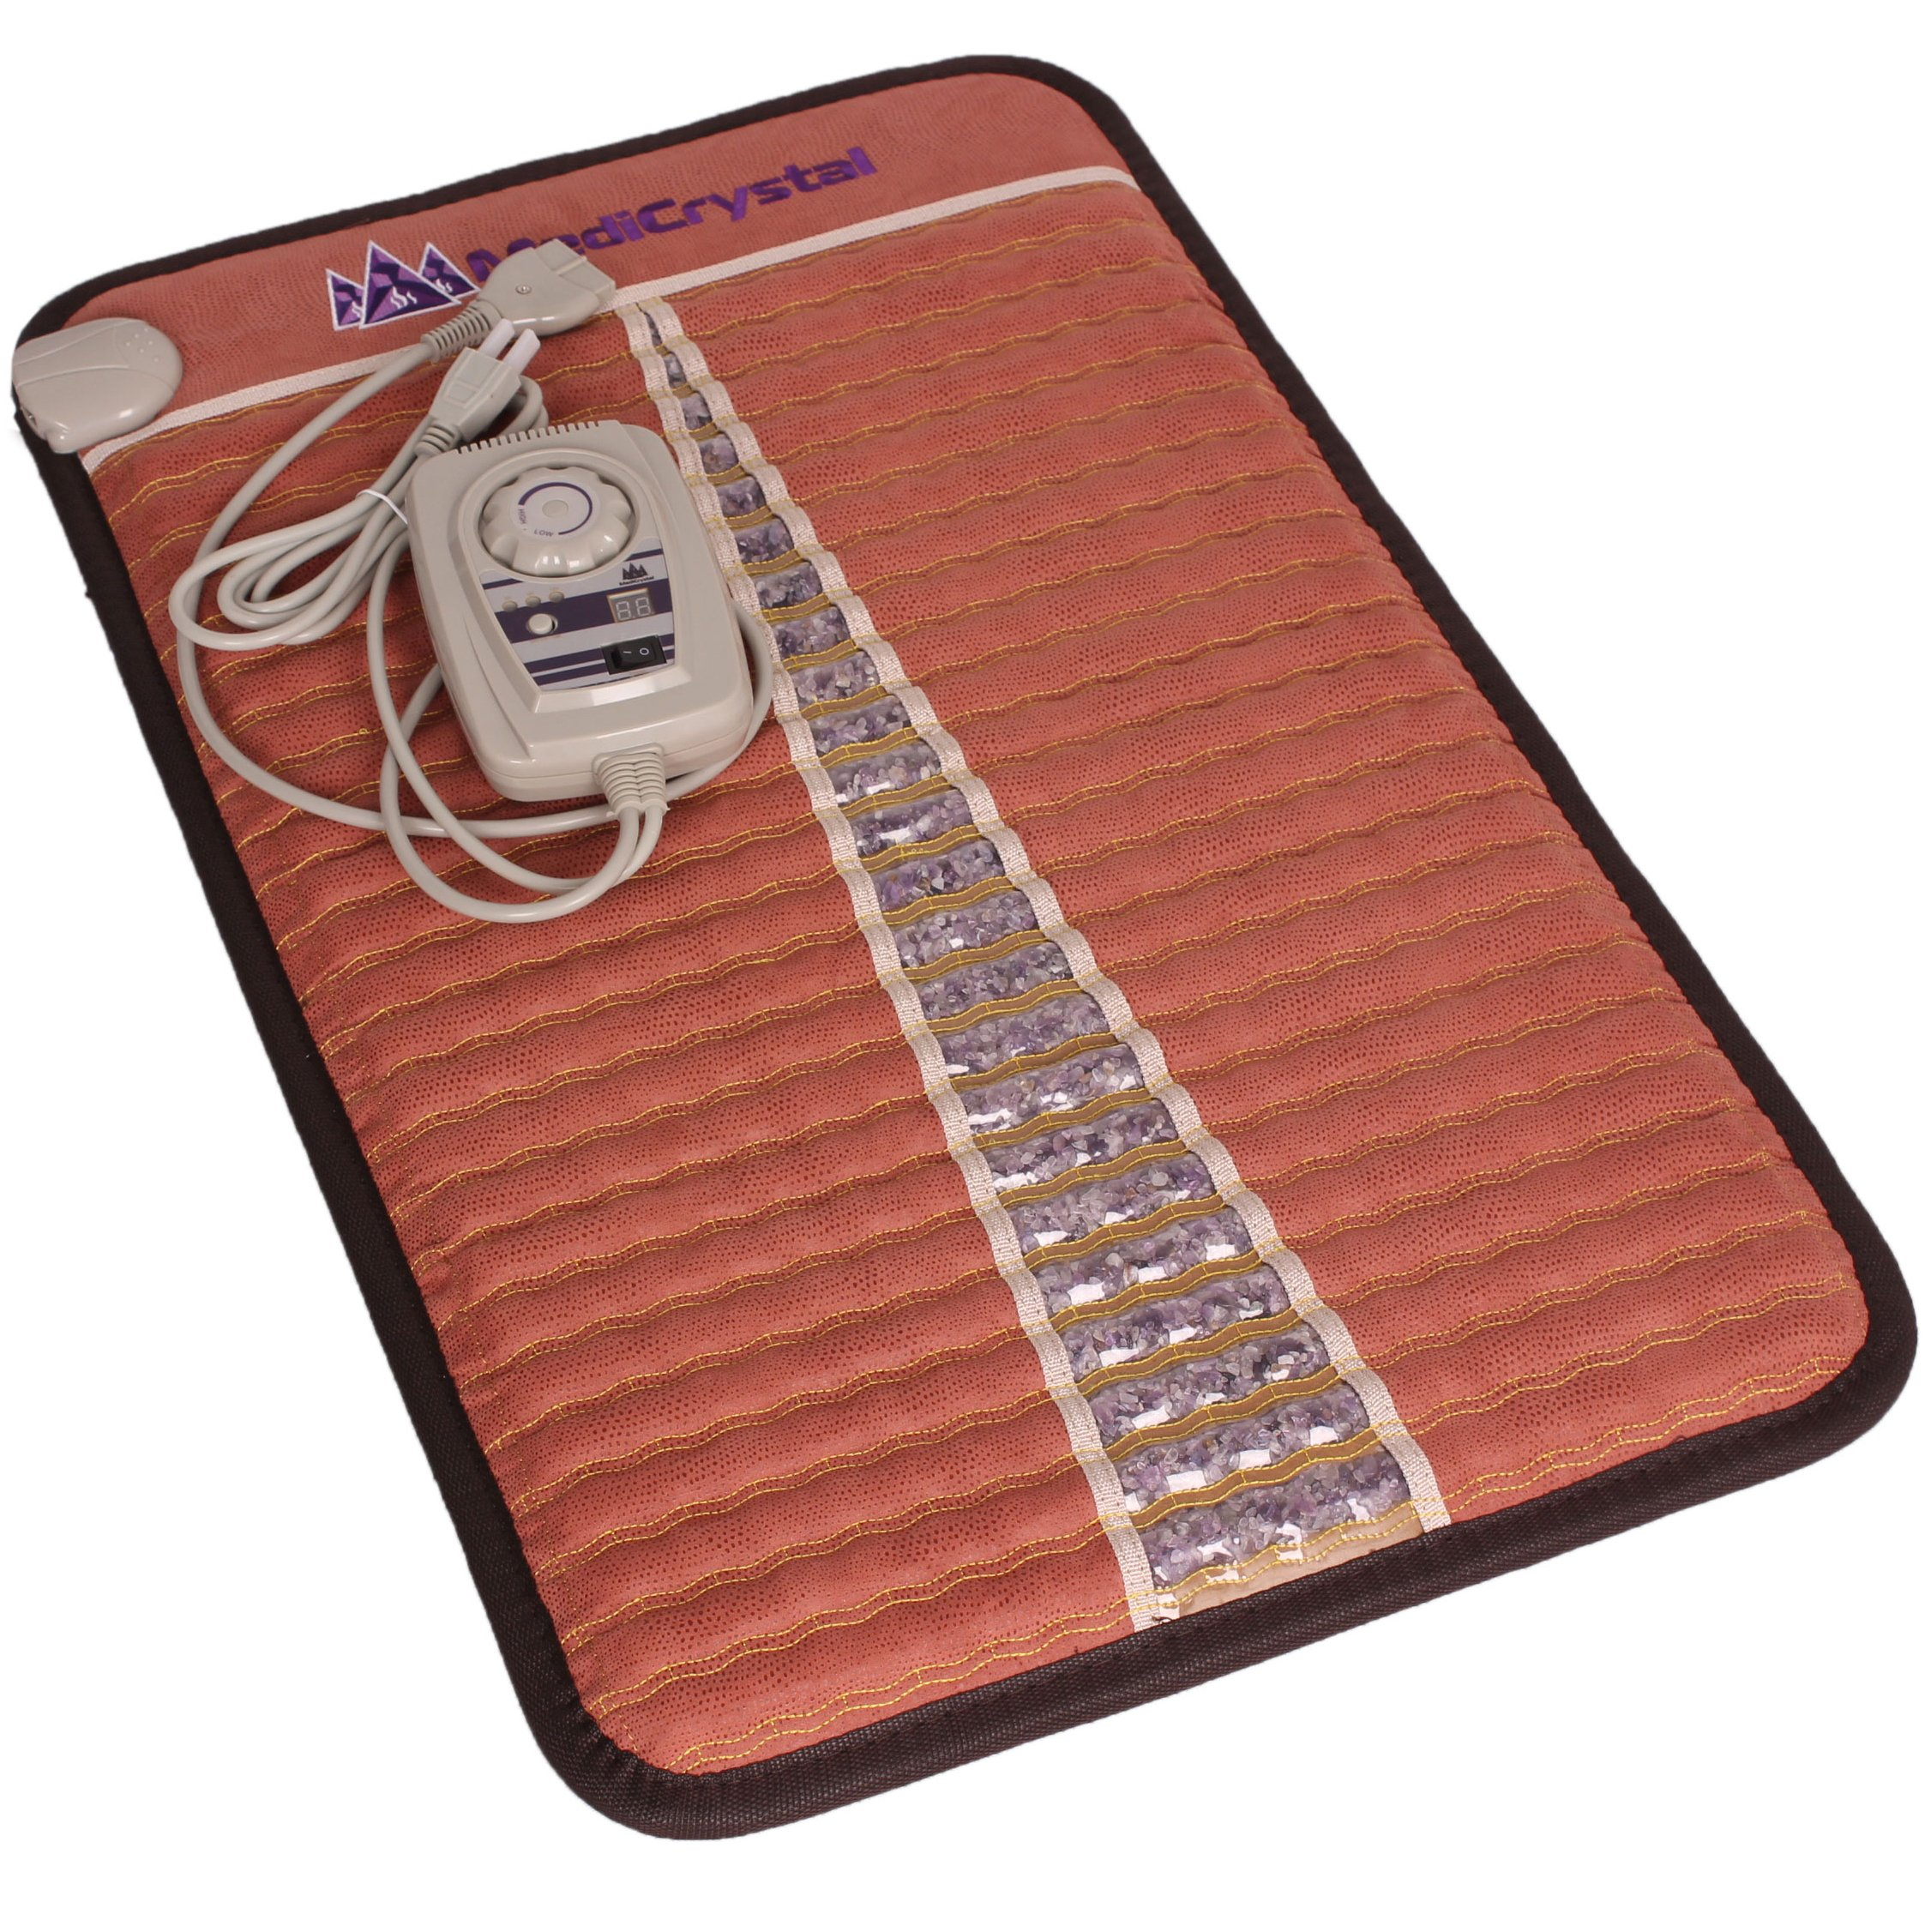 Far Infrared Amethyst Mat Mini (32''L x 20''W) - Negative Ion - FIR Heat - Jewelry Natural Amethyst - FDA Registered Manufacturer - Adjustable Temperature Setting - Hot Stone Heating Pad - Reddish Brown by MediCrystal